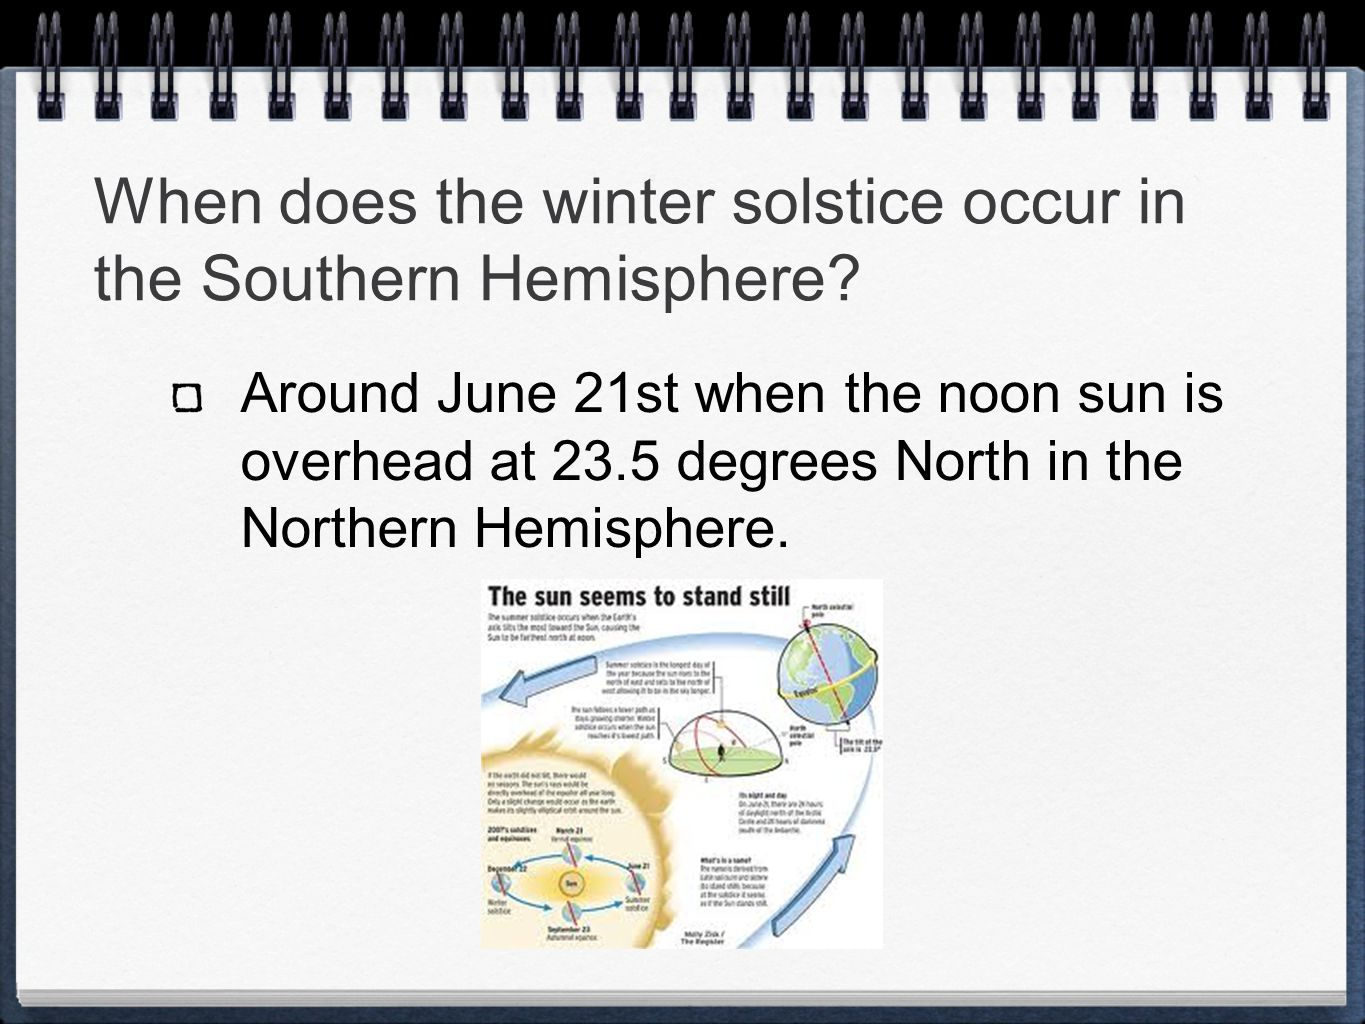 When does the winter solstice occur in the Southern Hemisphere